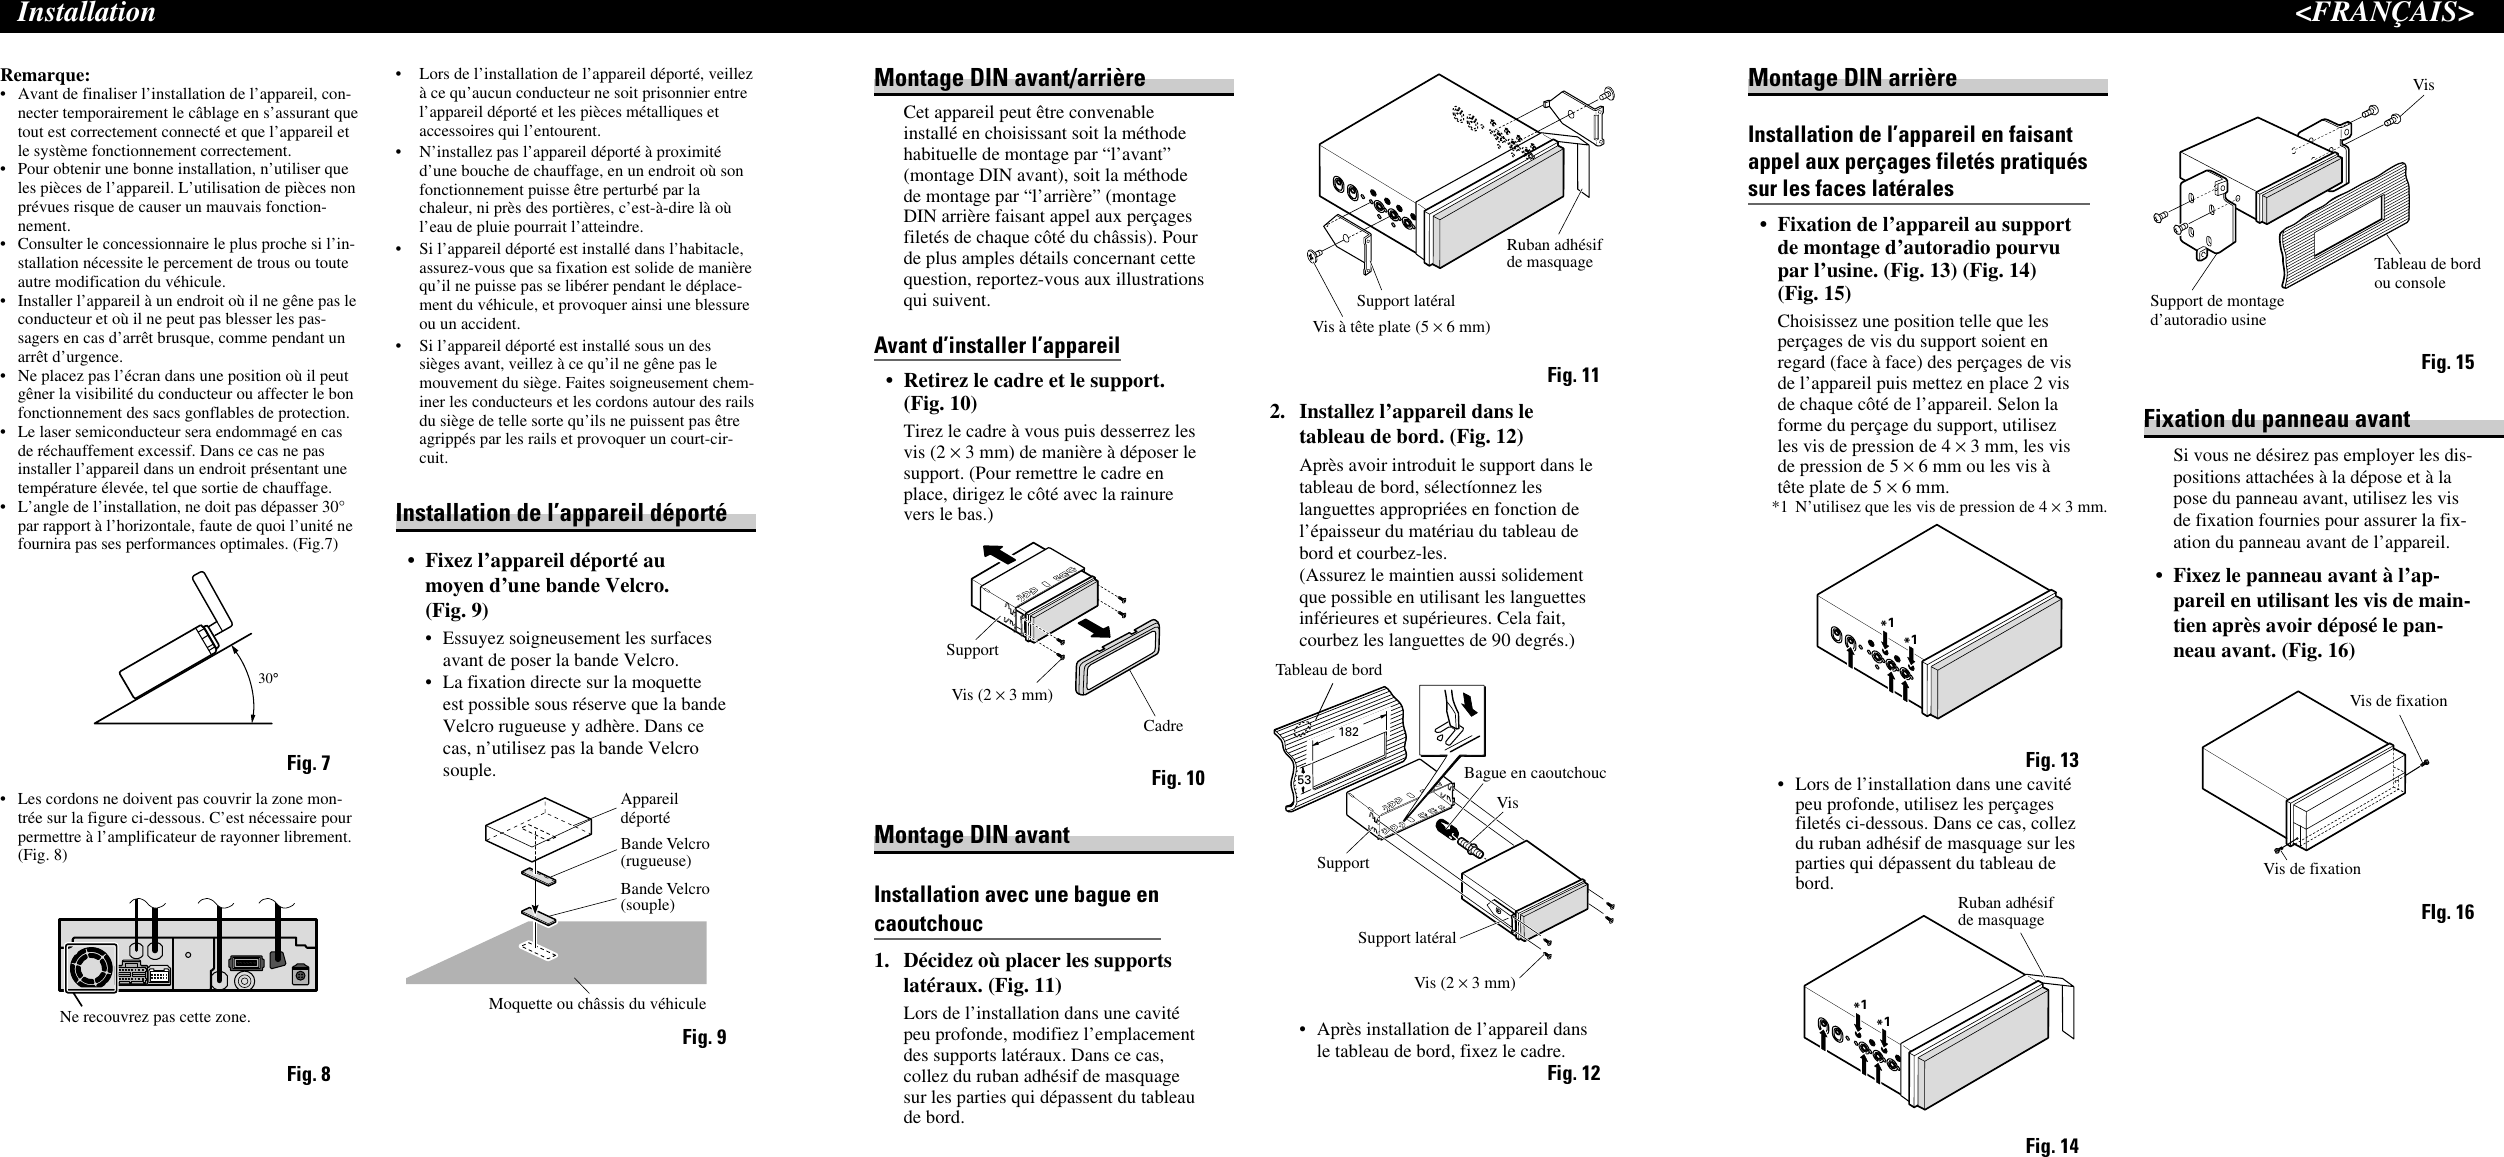 Pioneer Crd3782 A If Not Then 2038105installation Manual Avh P6500dvd Wiring Diagram Page 8 Of